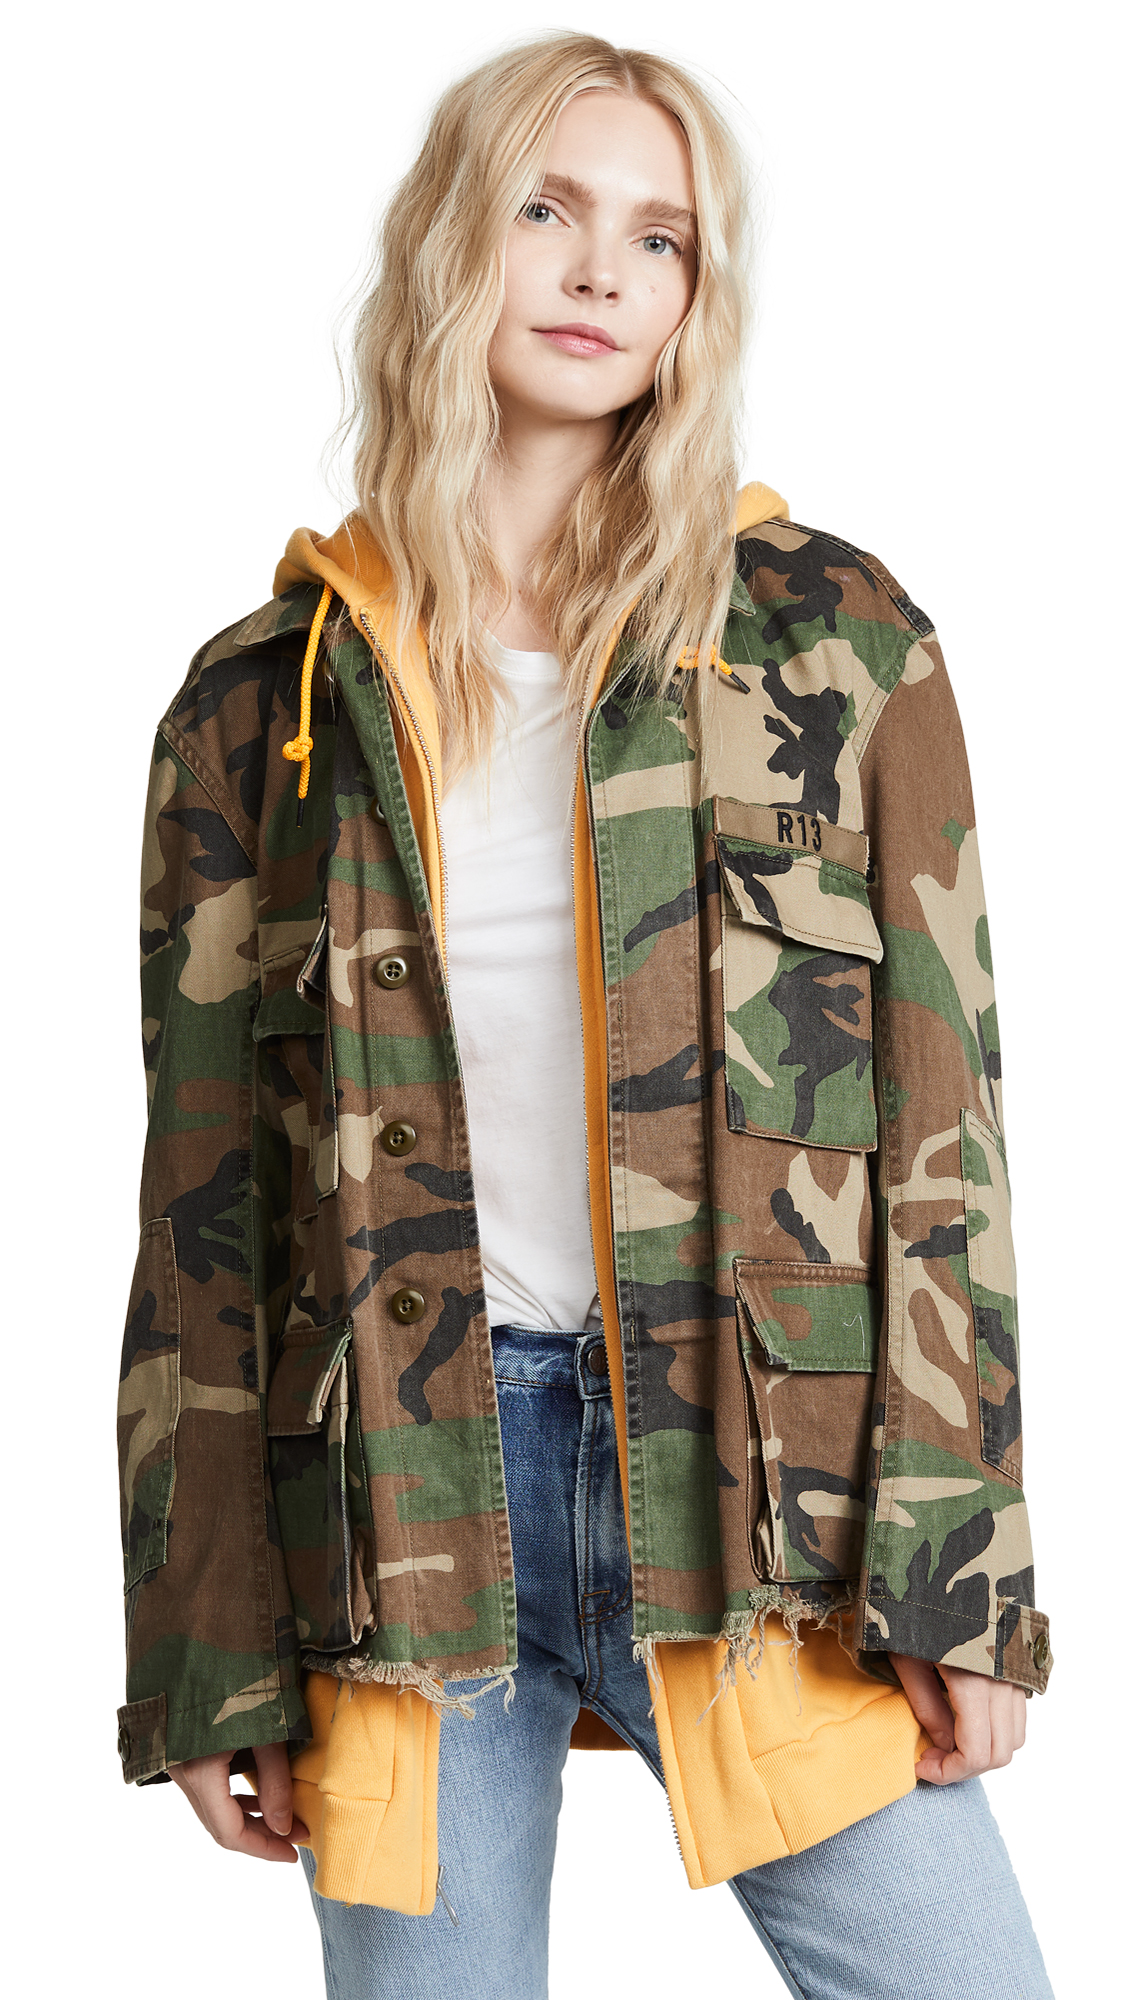 R13 Camo Abu Jacket with Long Hoodie In Camo/Yellow